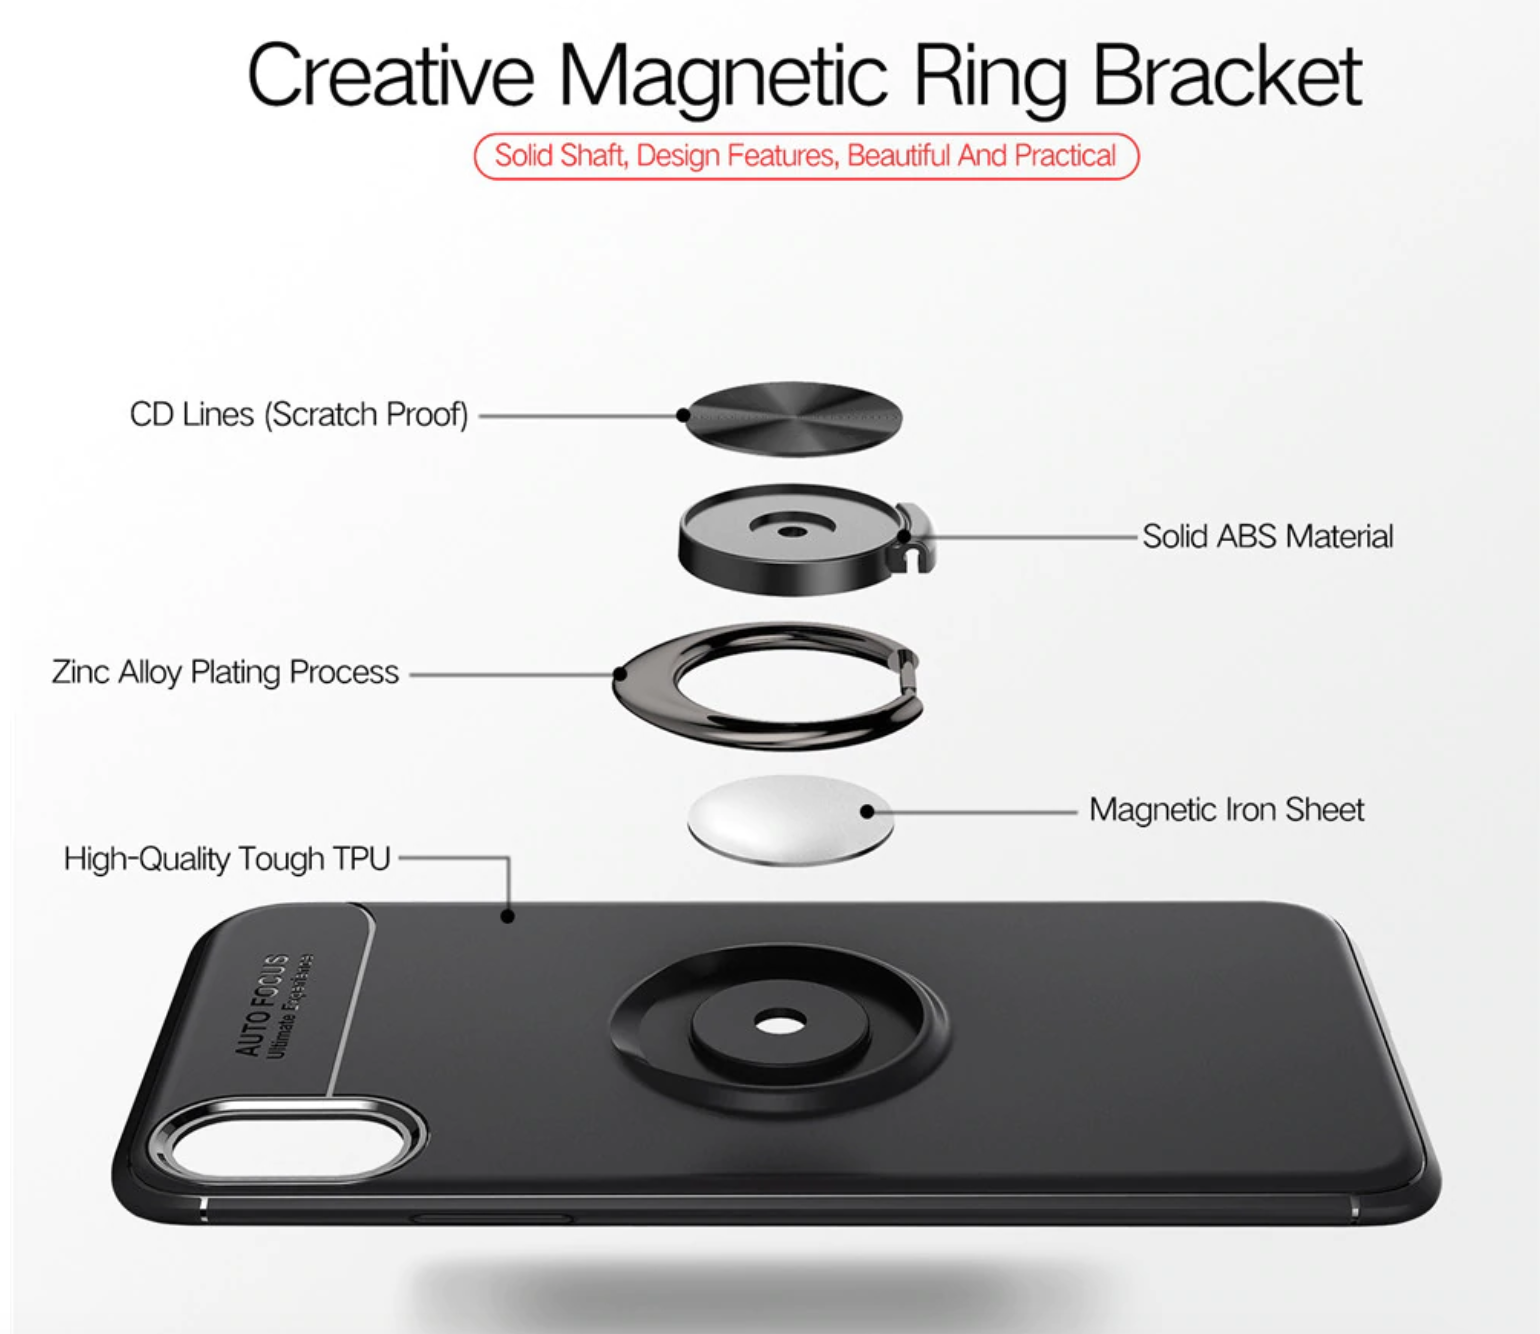 Soft Silicone Magnetic Ring Case Design